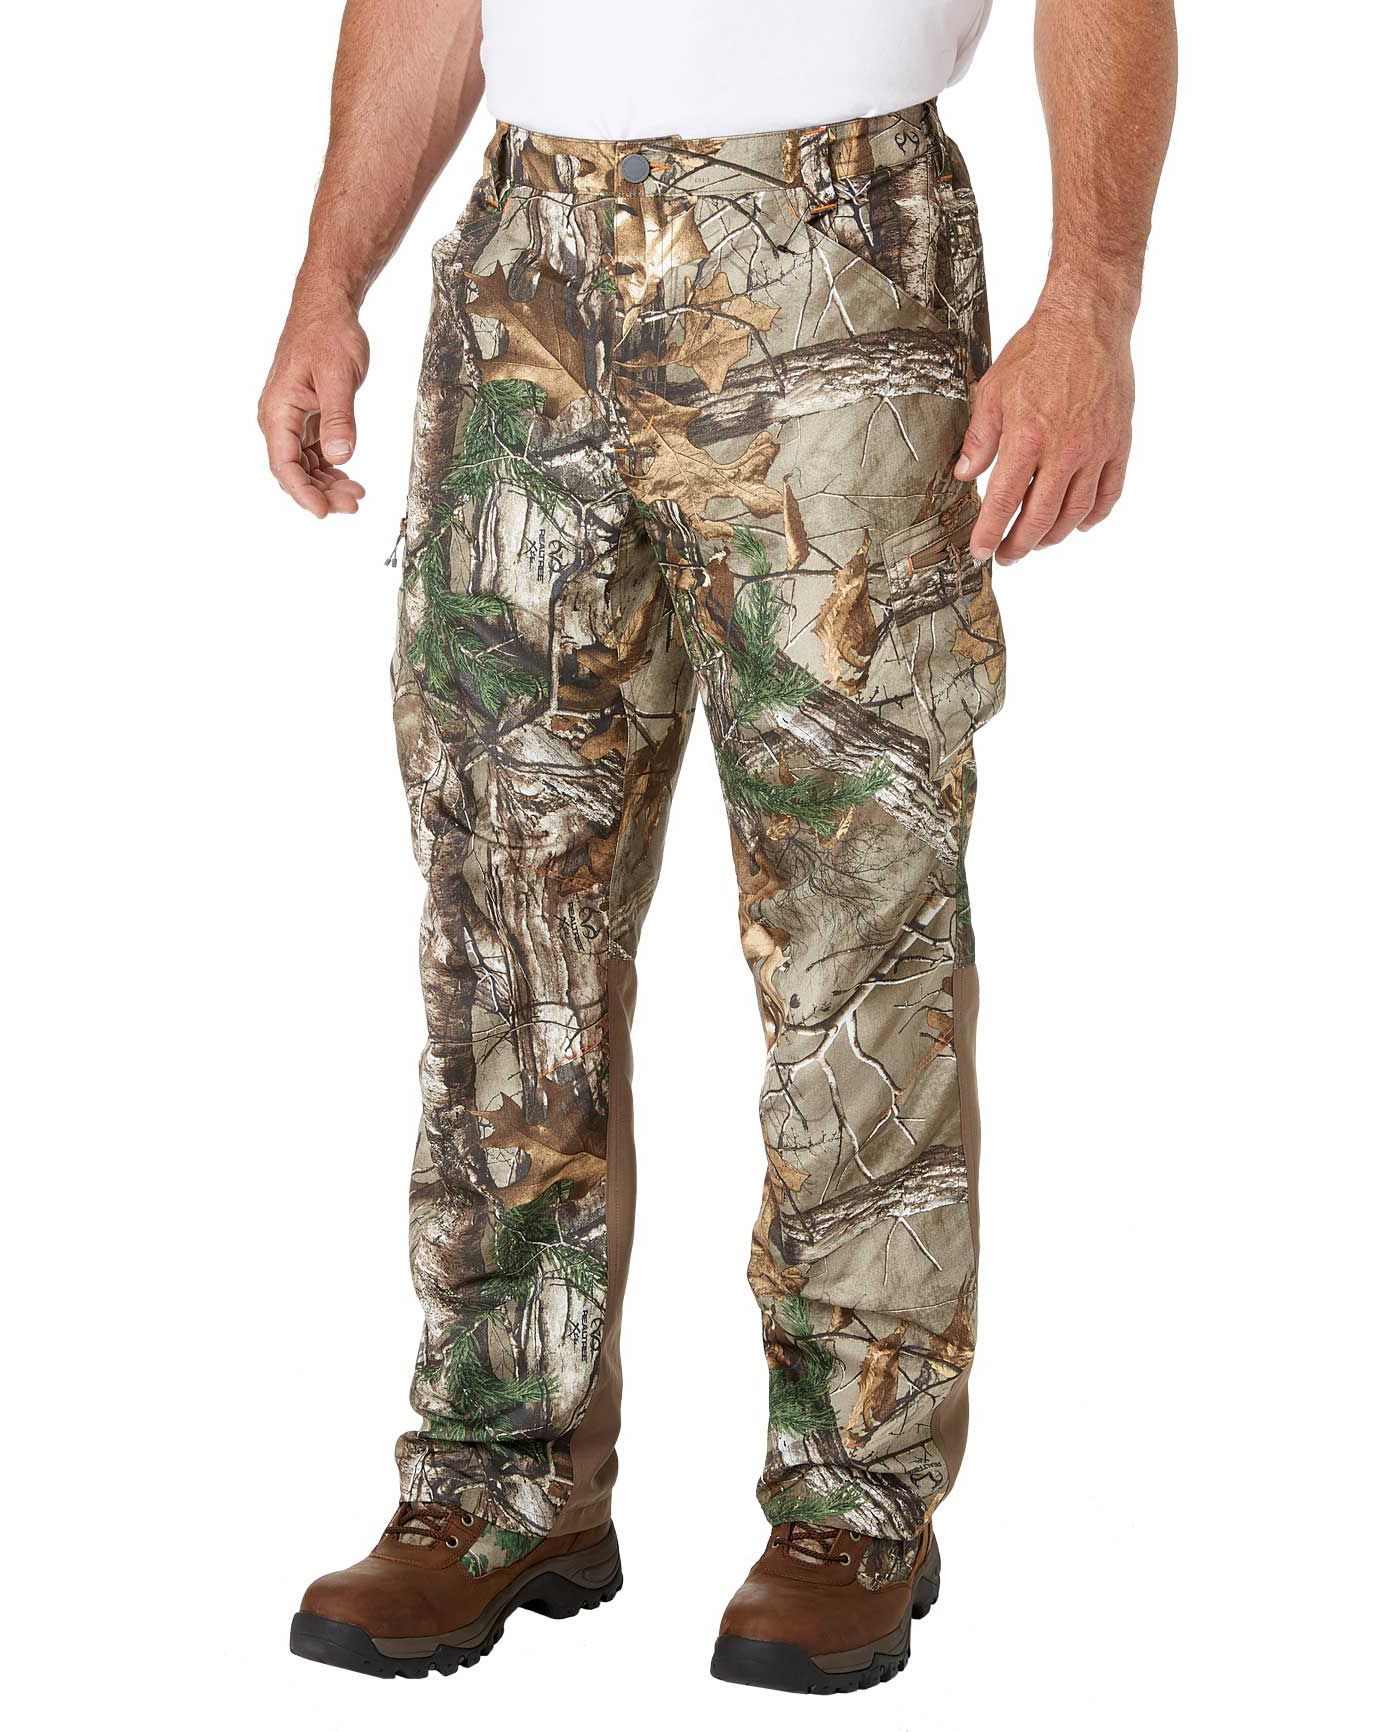 Field & Stream Men's Every Hunt Lightweight Cargo Hunting Pants